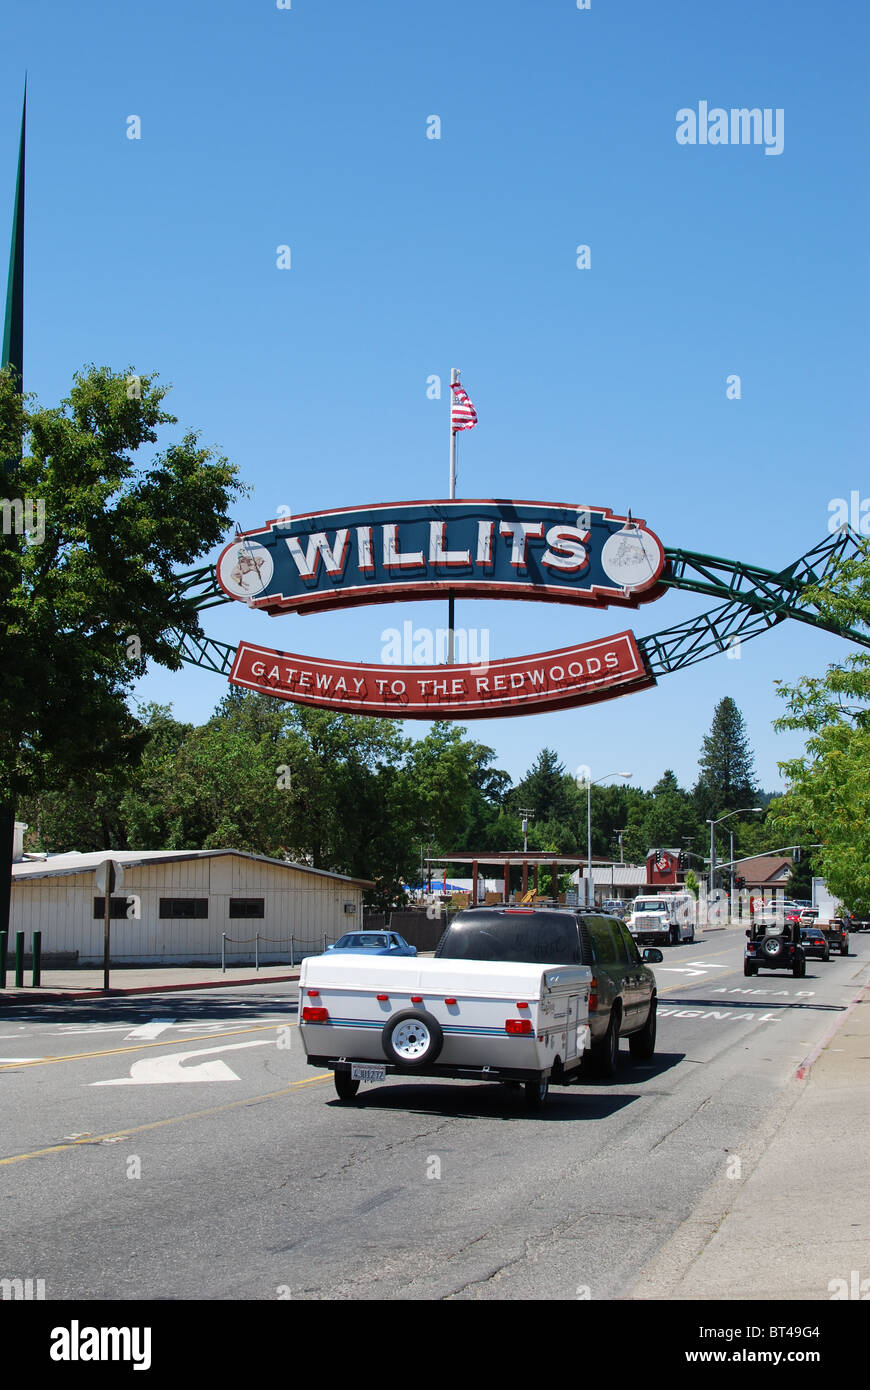 Willits: Gateway to the Redwoods of California - Stock Image